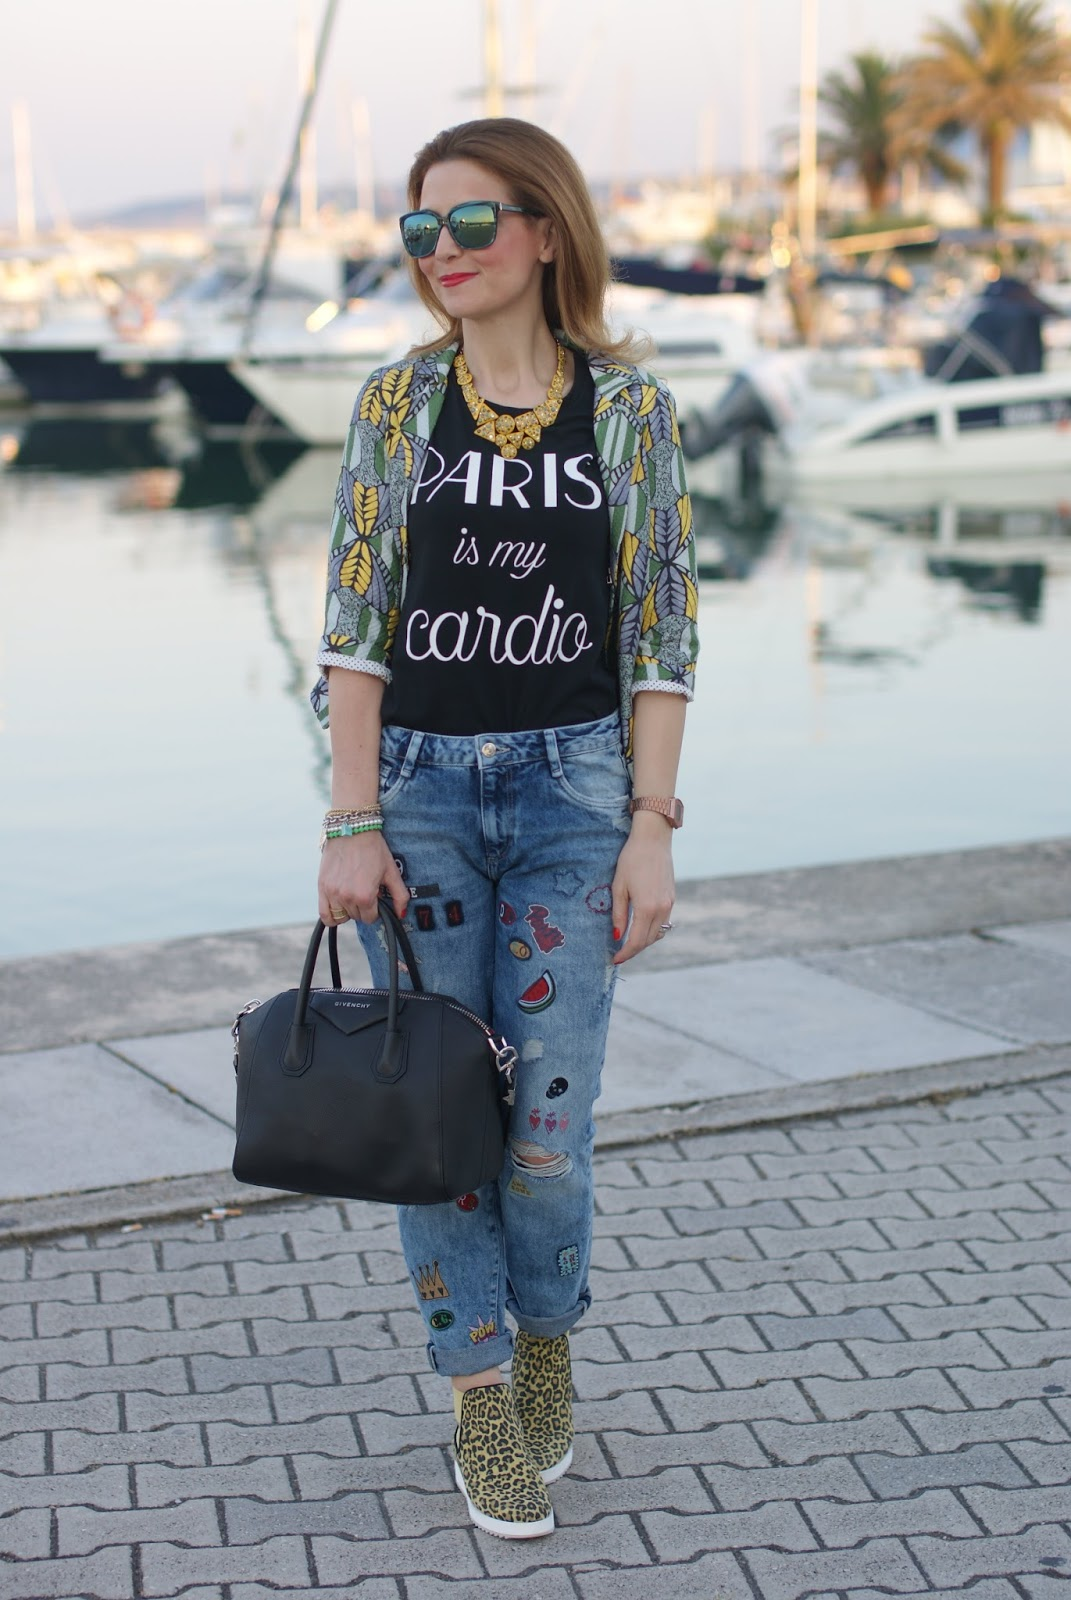 560f95d51ed Love my patch jeans and my Paris is my cardio t-shirt with 181 shoes !